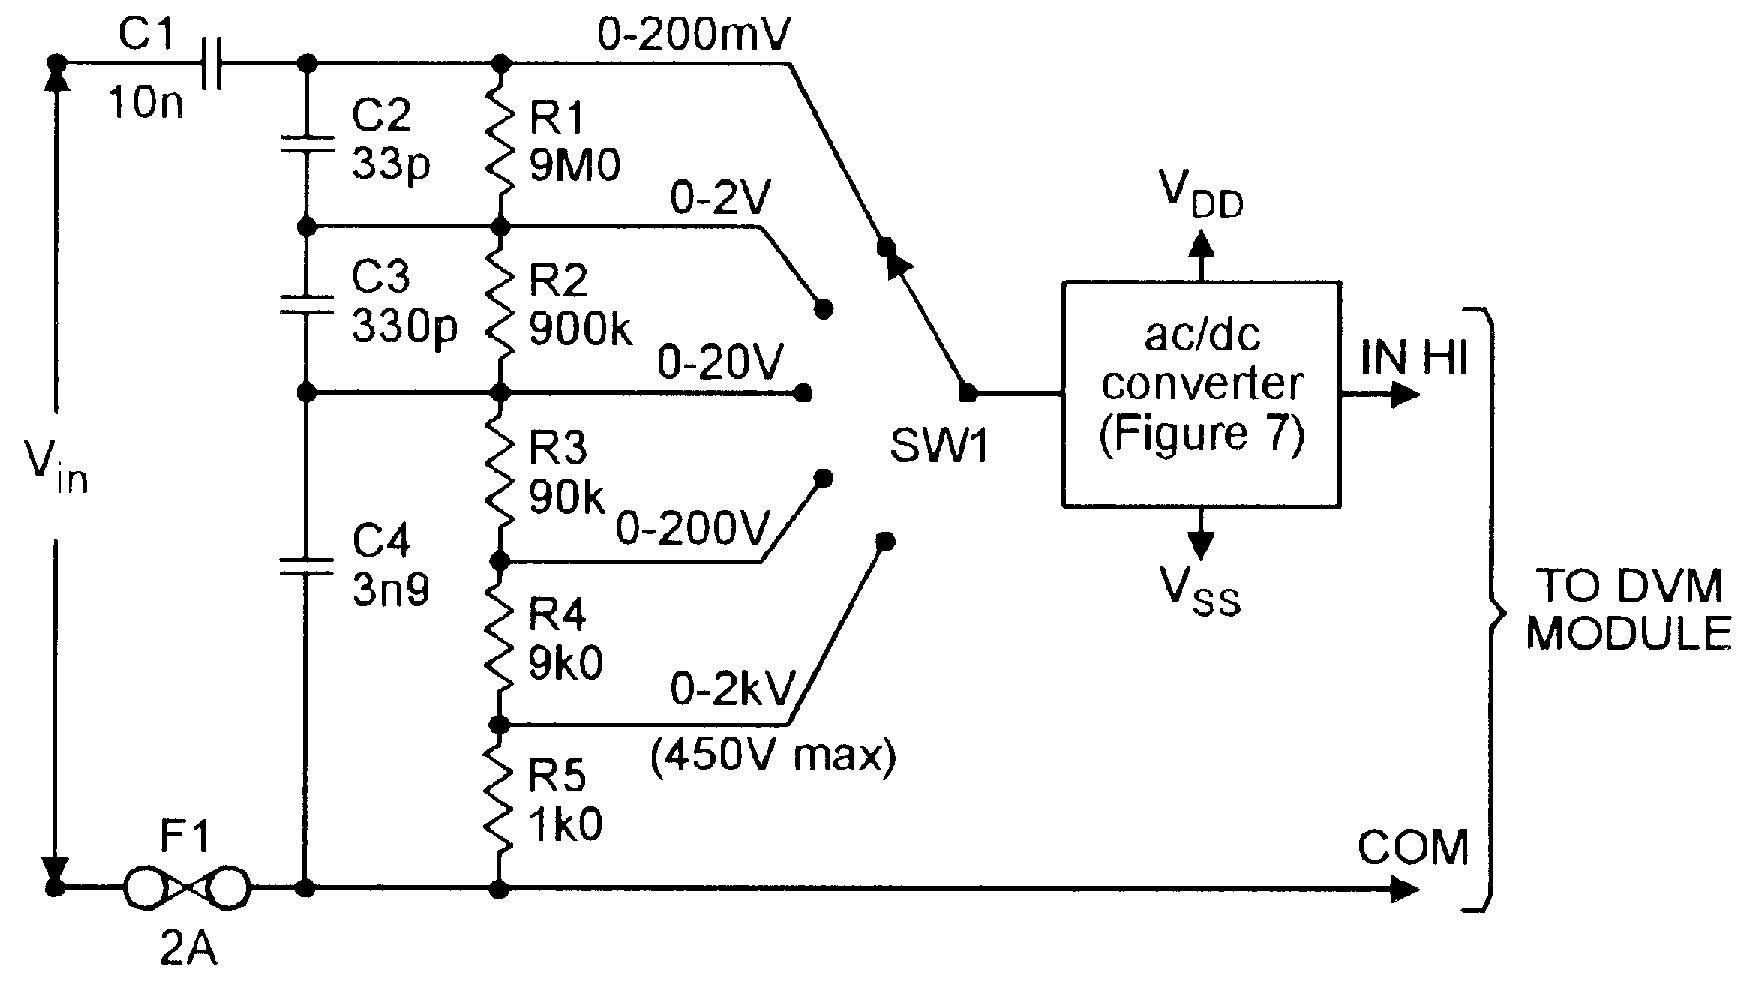 Op Amp Cookbook Part 4 Nuts Volts Magazine Of A Noninverting Amplifier For Given Input Waveform And Gain Five Range Ac Voltmeter Converter Use With Dvm Modules